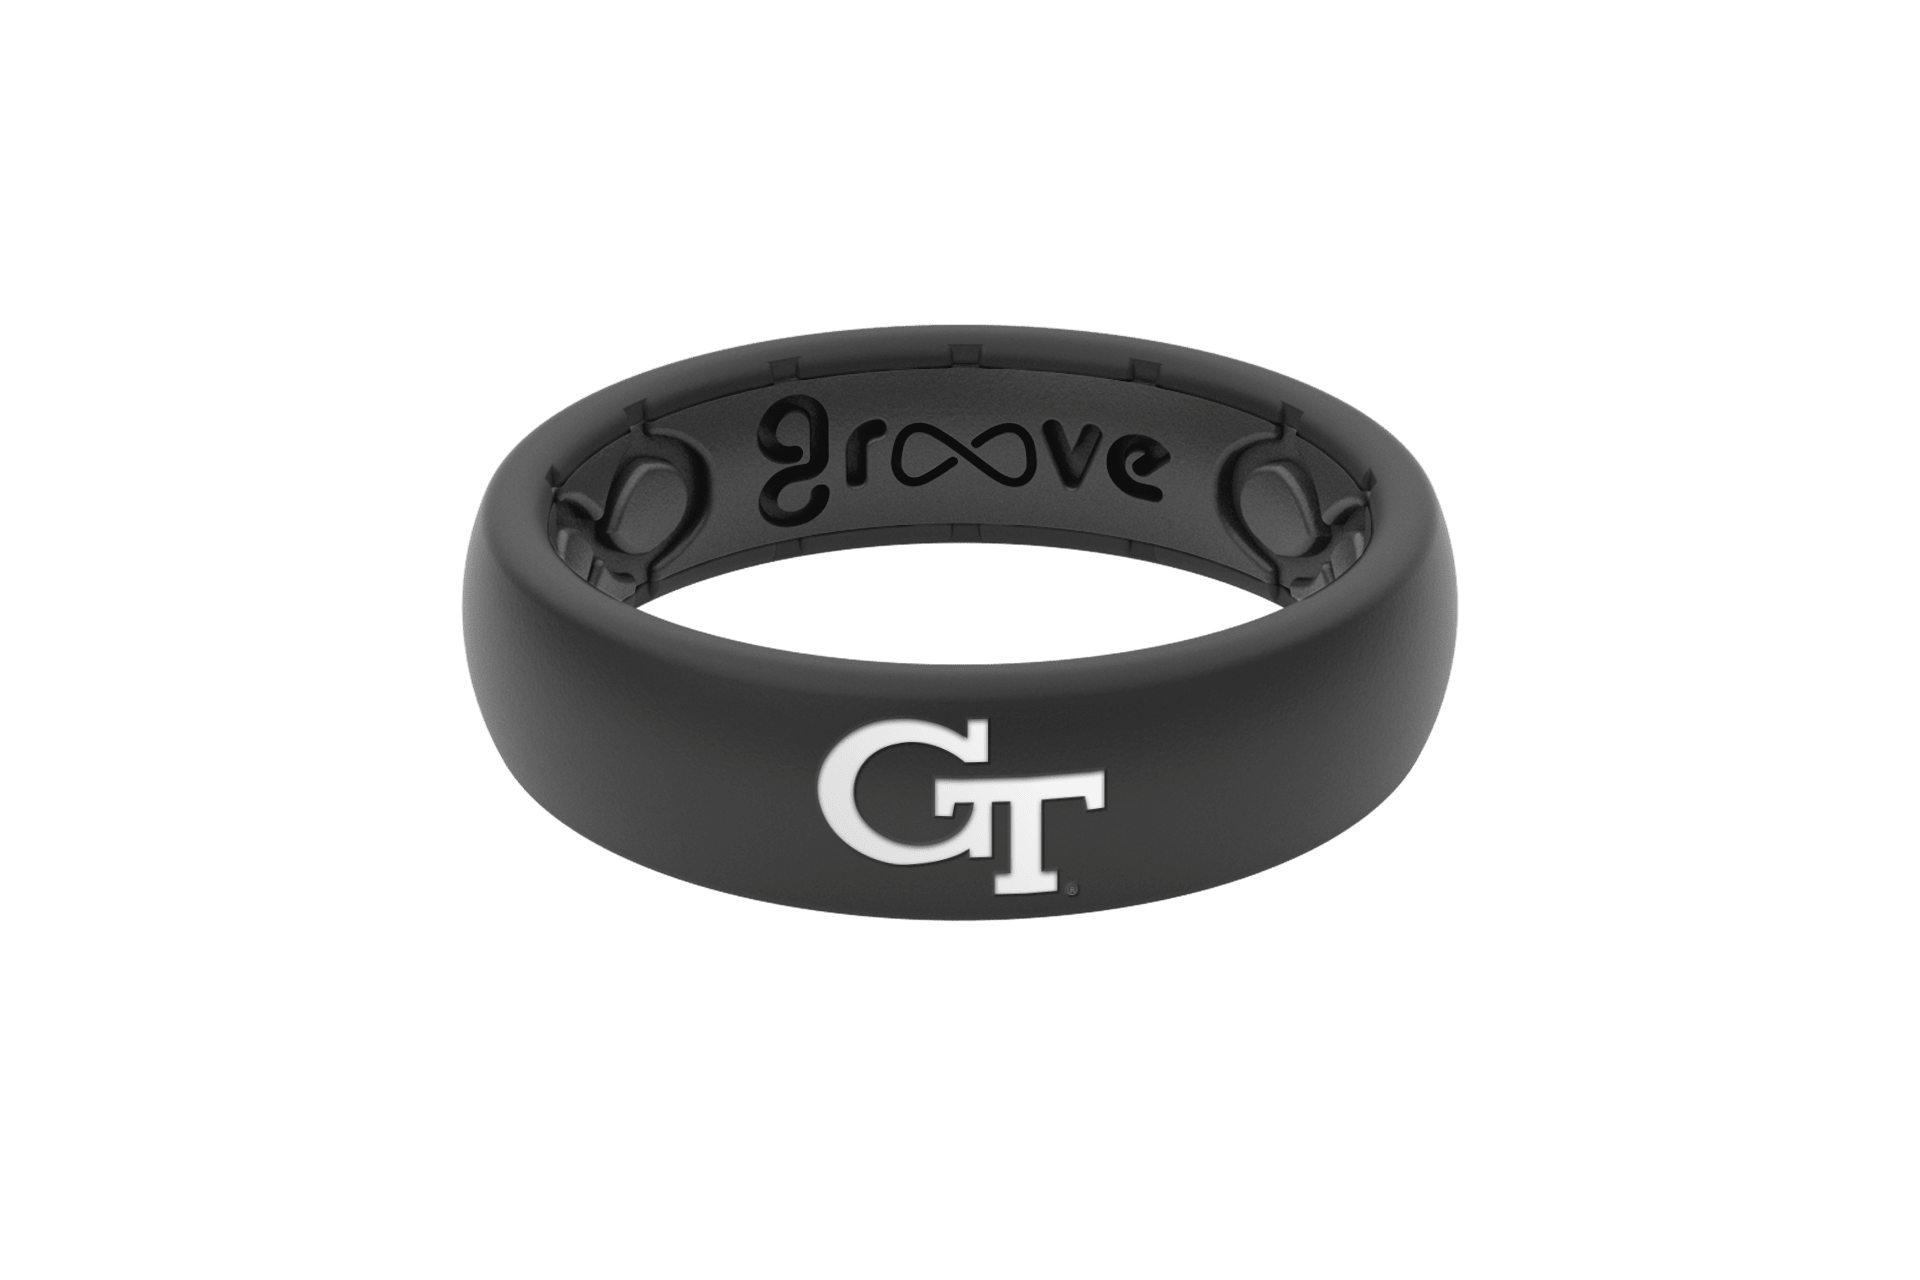 Thin College Georgia Tech - Groove Life Silicone Wedding Rings